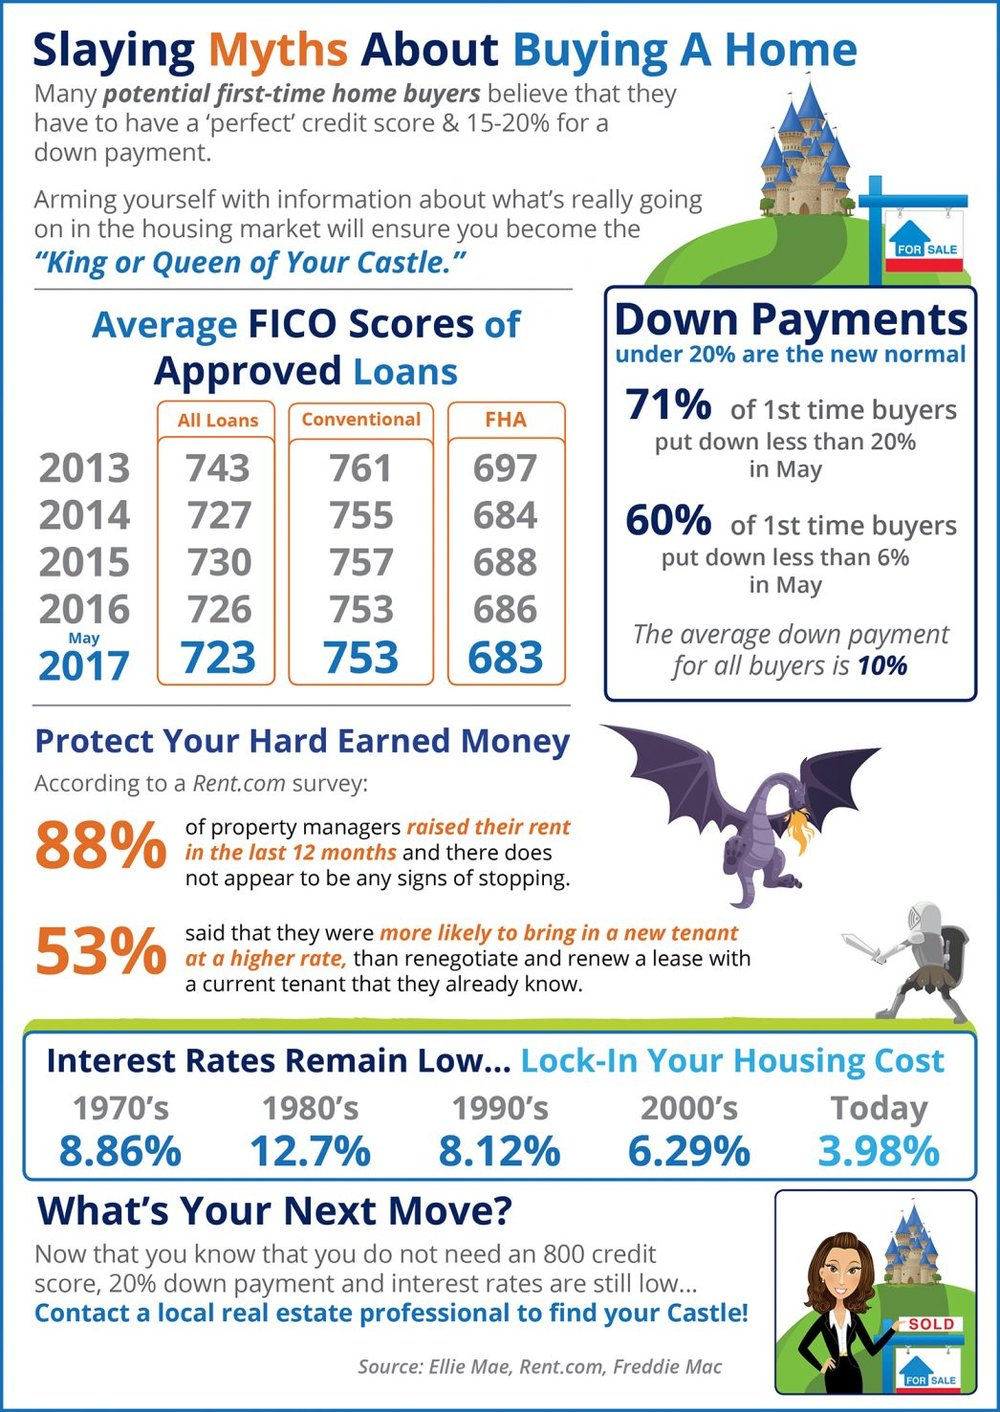 Some Highlights: 1) Interest rates are still below historic numbers. 2) 88% of property managers raised their rent in the last 12 months! 3) The credit score requirements for mortgage approval continue to fall.